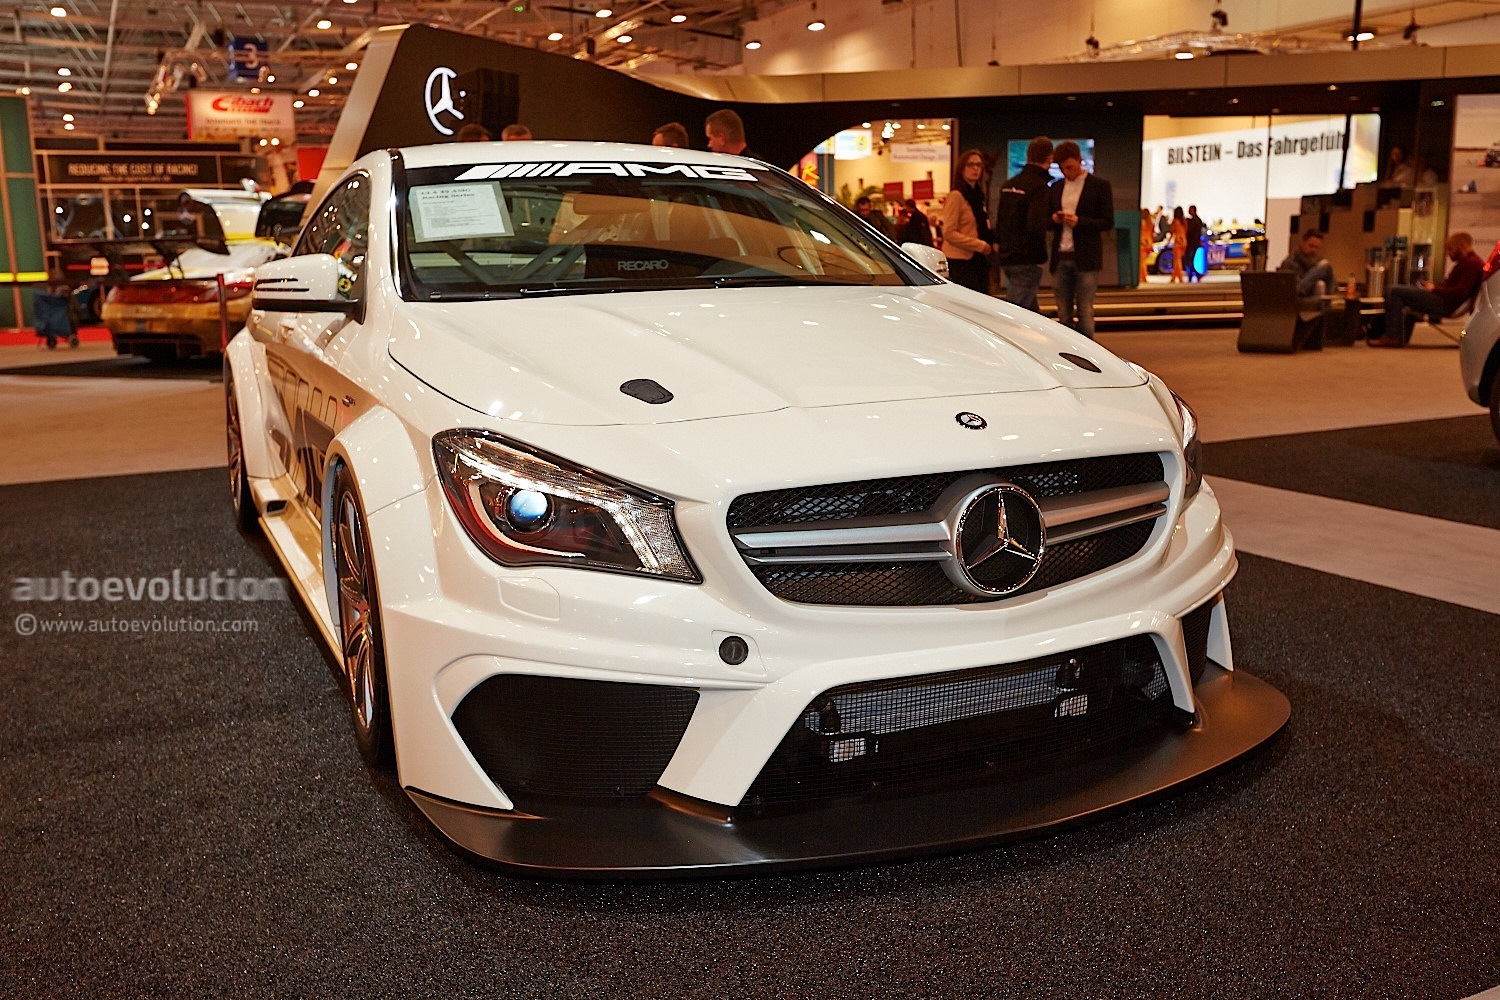 cla 45 amg racing series shows up in esssen video live. Black Bedroom Furniture Sets. Home Design Ideas